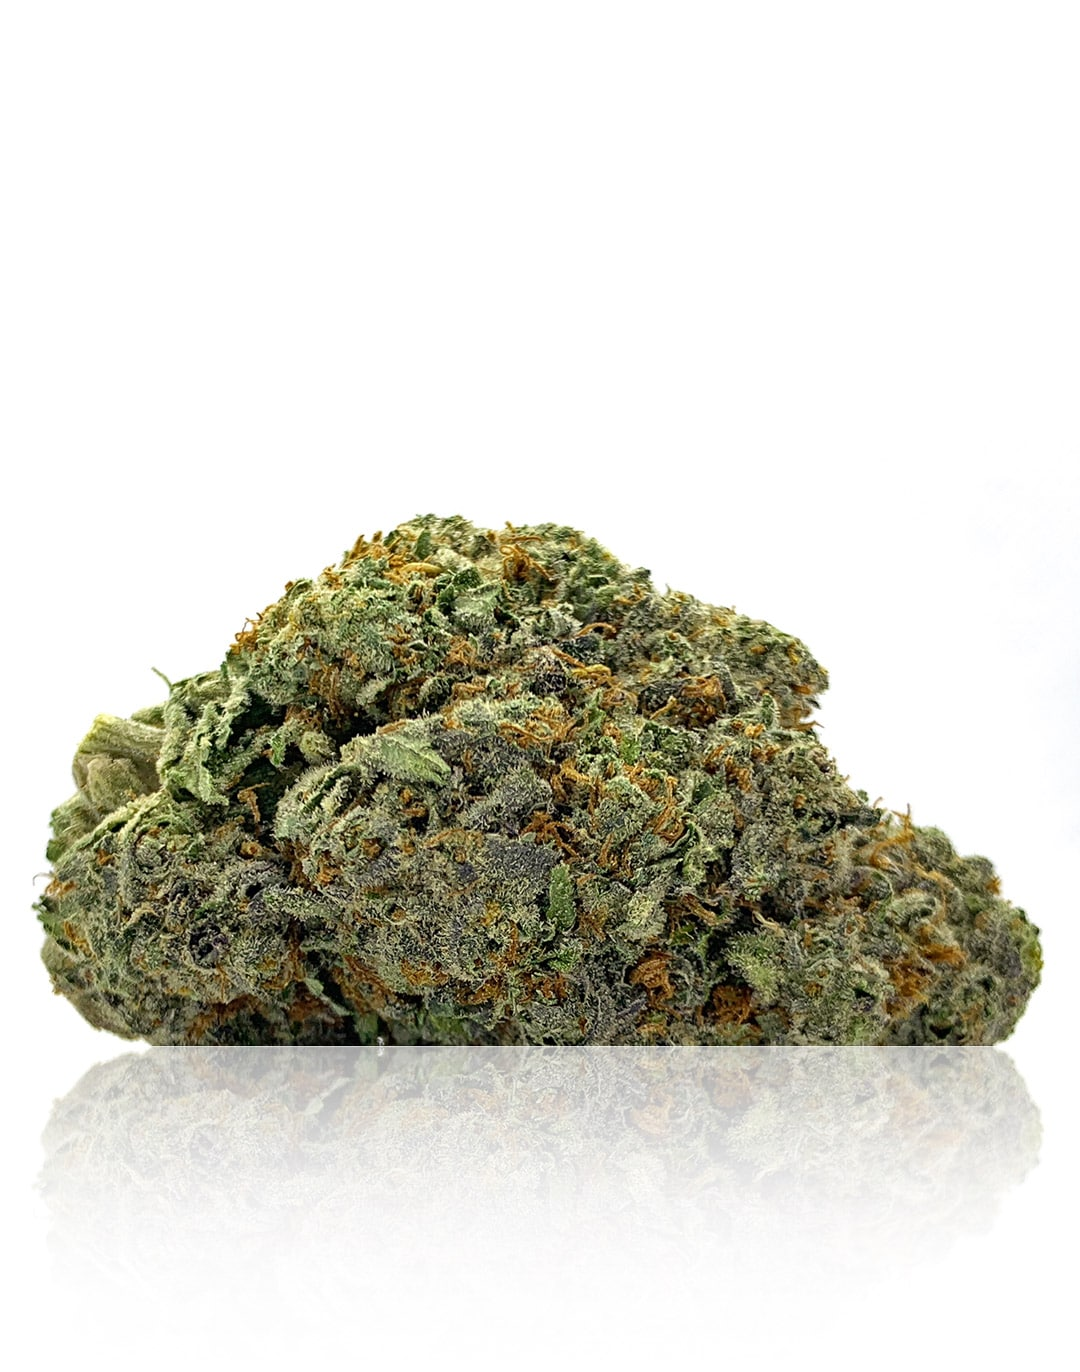 (AAA) Kushberry by Ganja Grams - Image © 2020 Ganja Grams. All Rights Reserved.